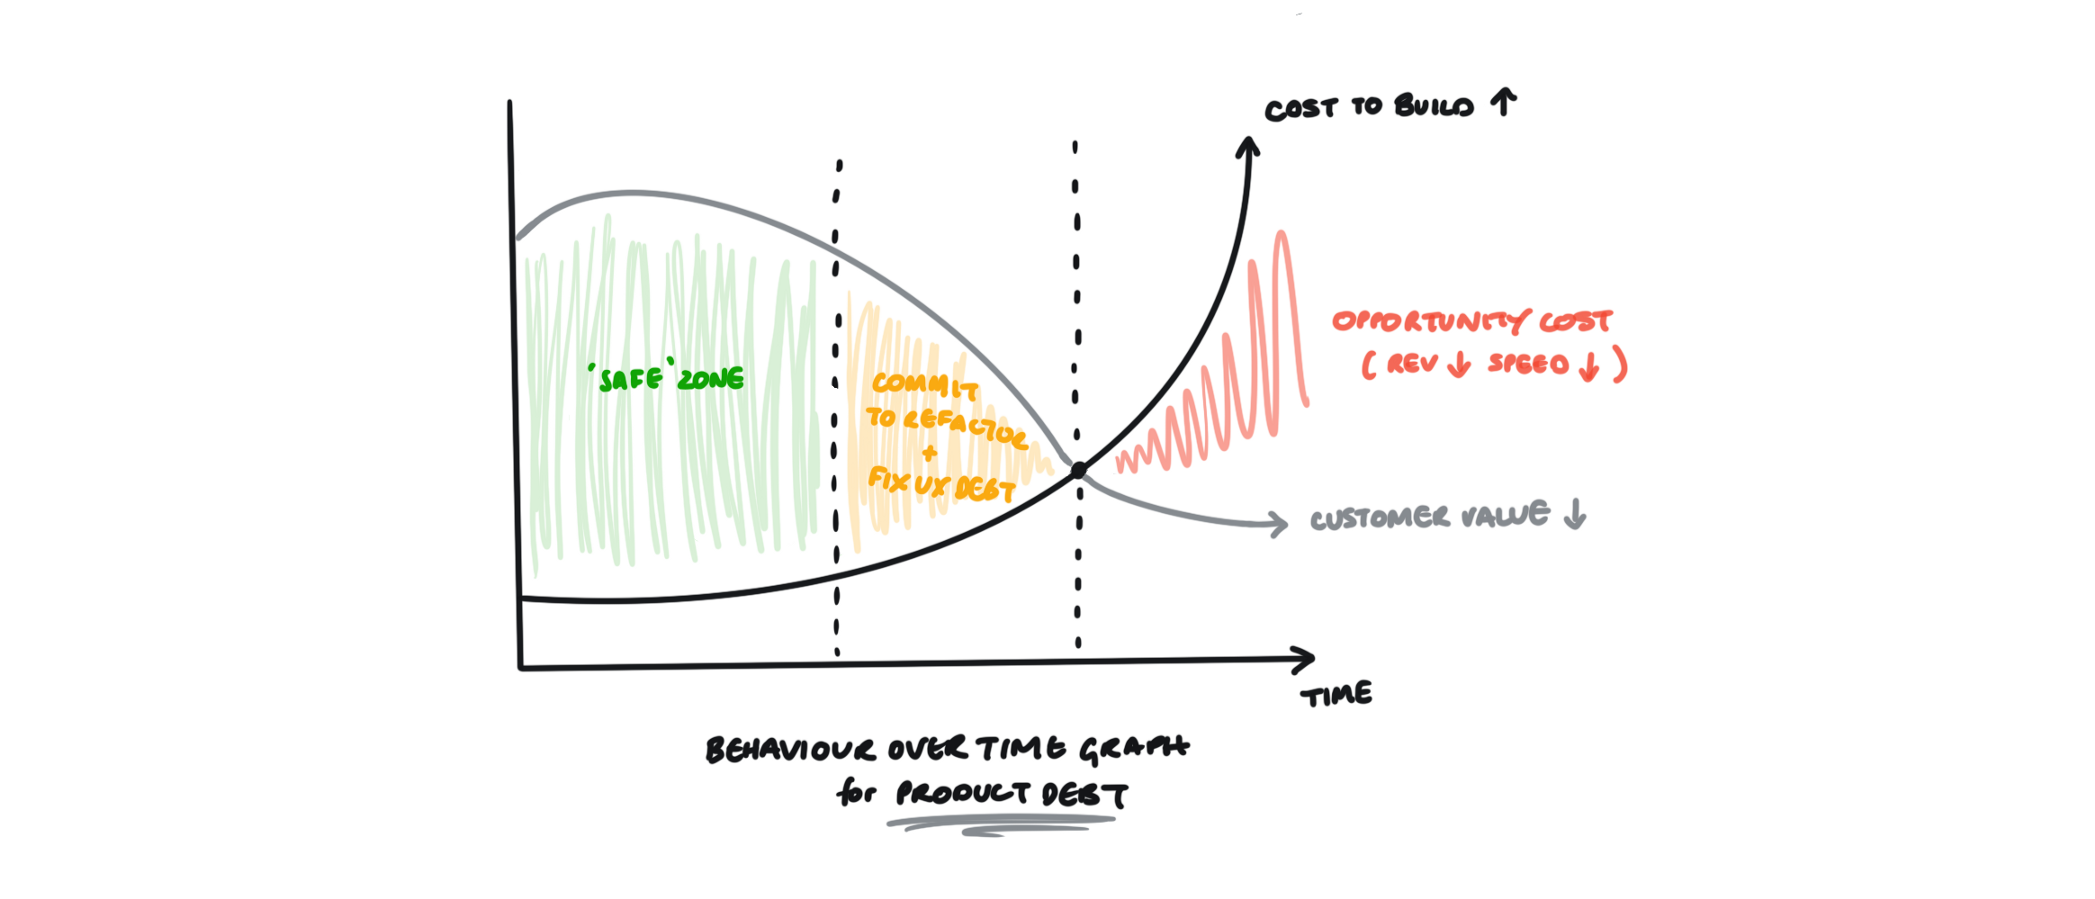 A behaviour over time graph that indicates when a product team should address its mounting debt.